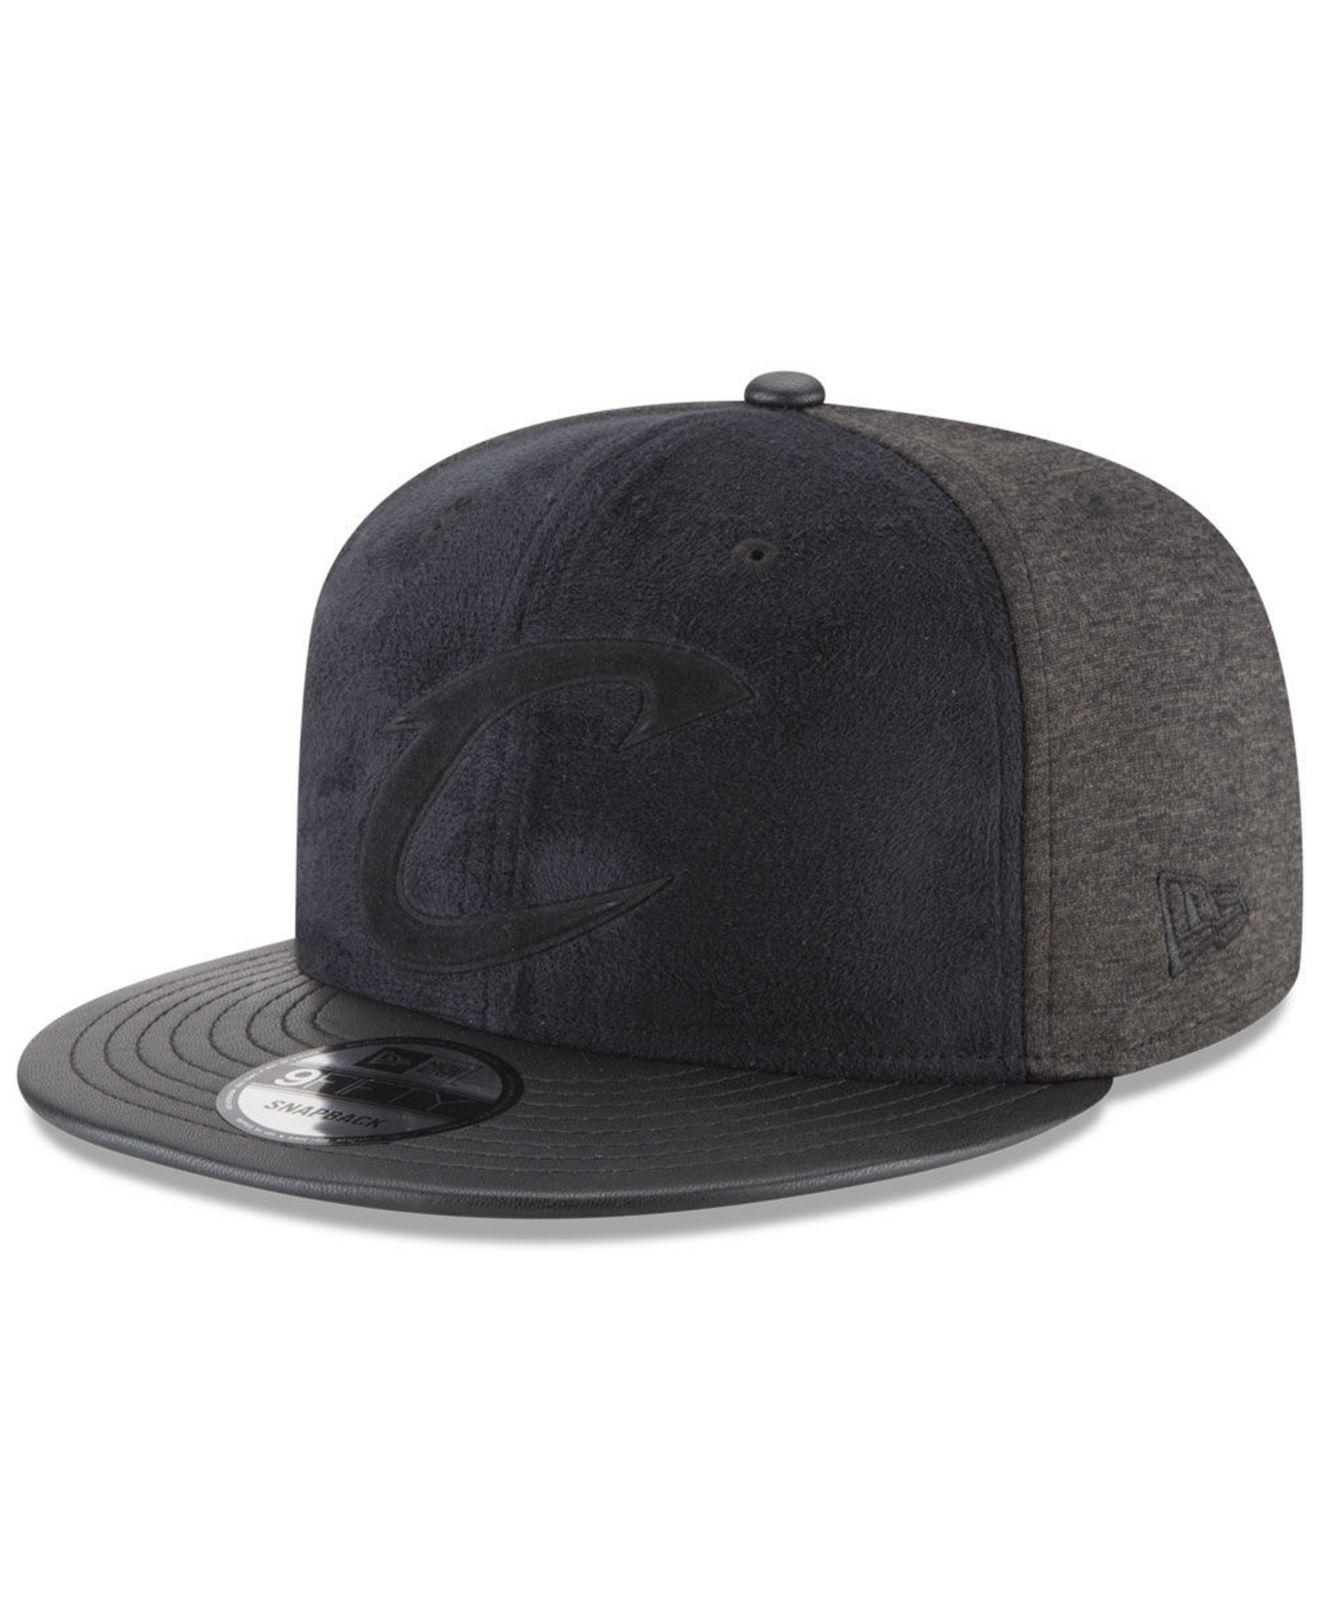 lowest price 507a2 b706e KTZ. Men s Black Nba All Star Paul George Collection 9fifty Snapback Cap